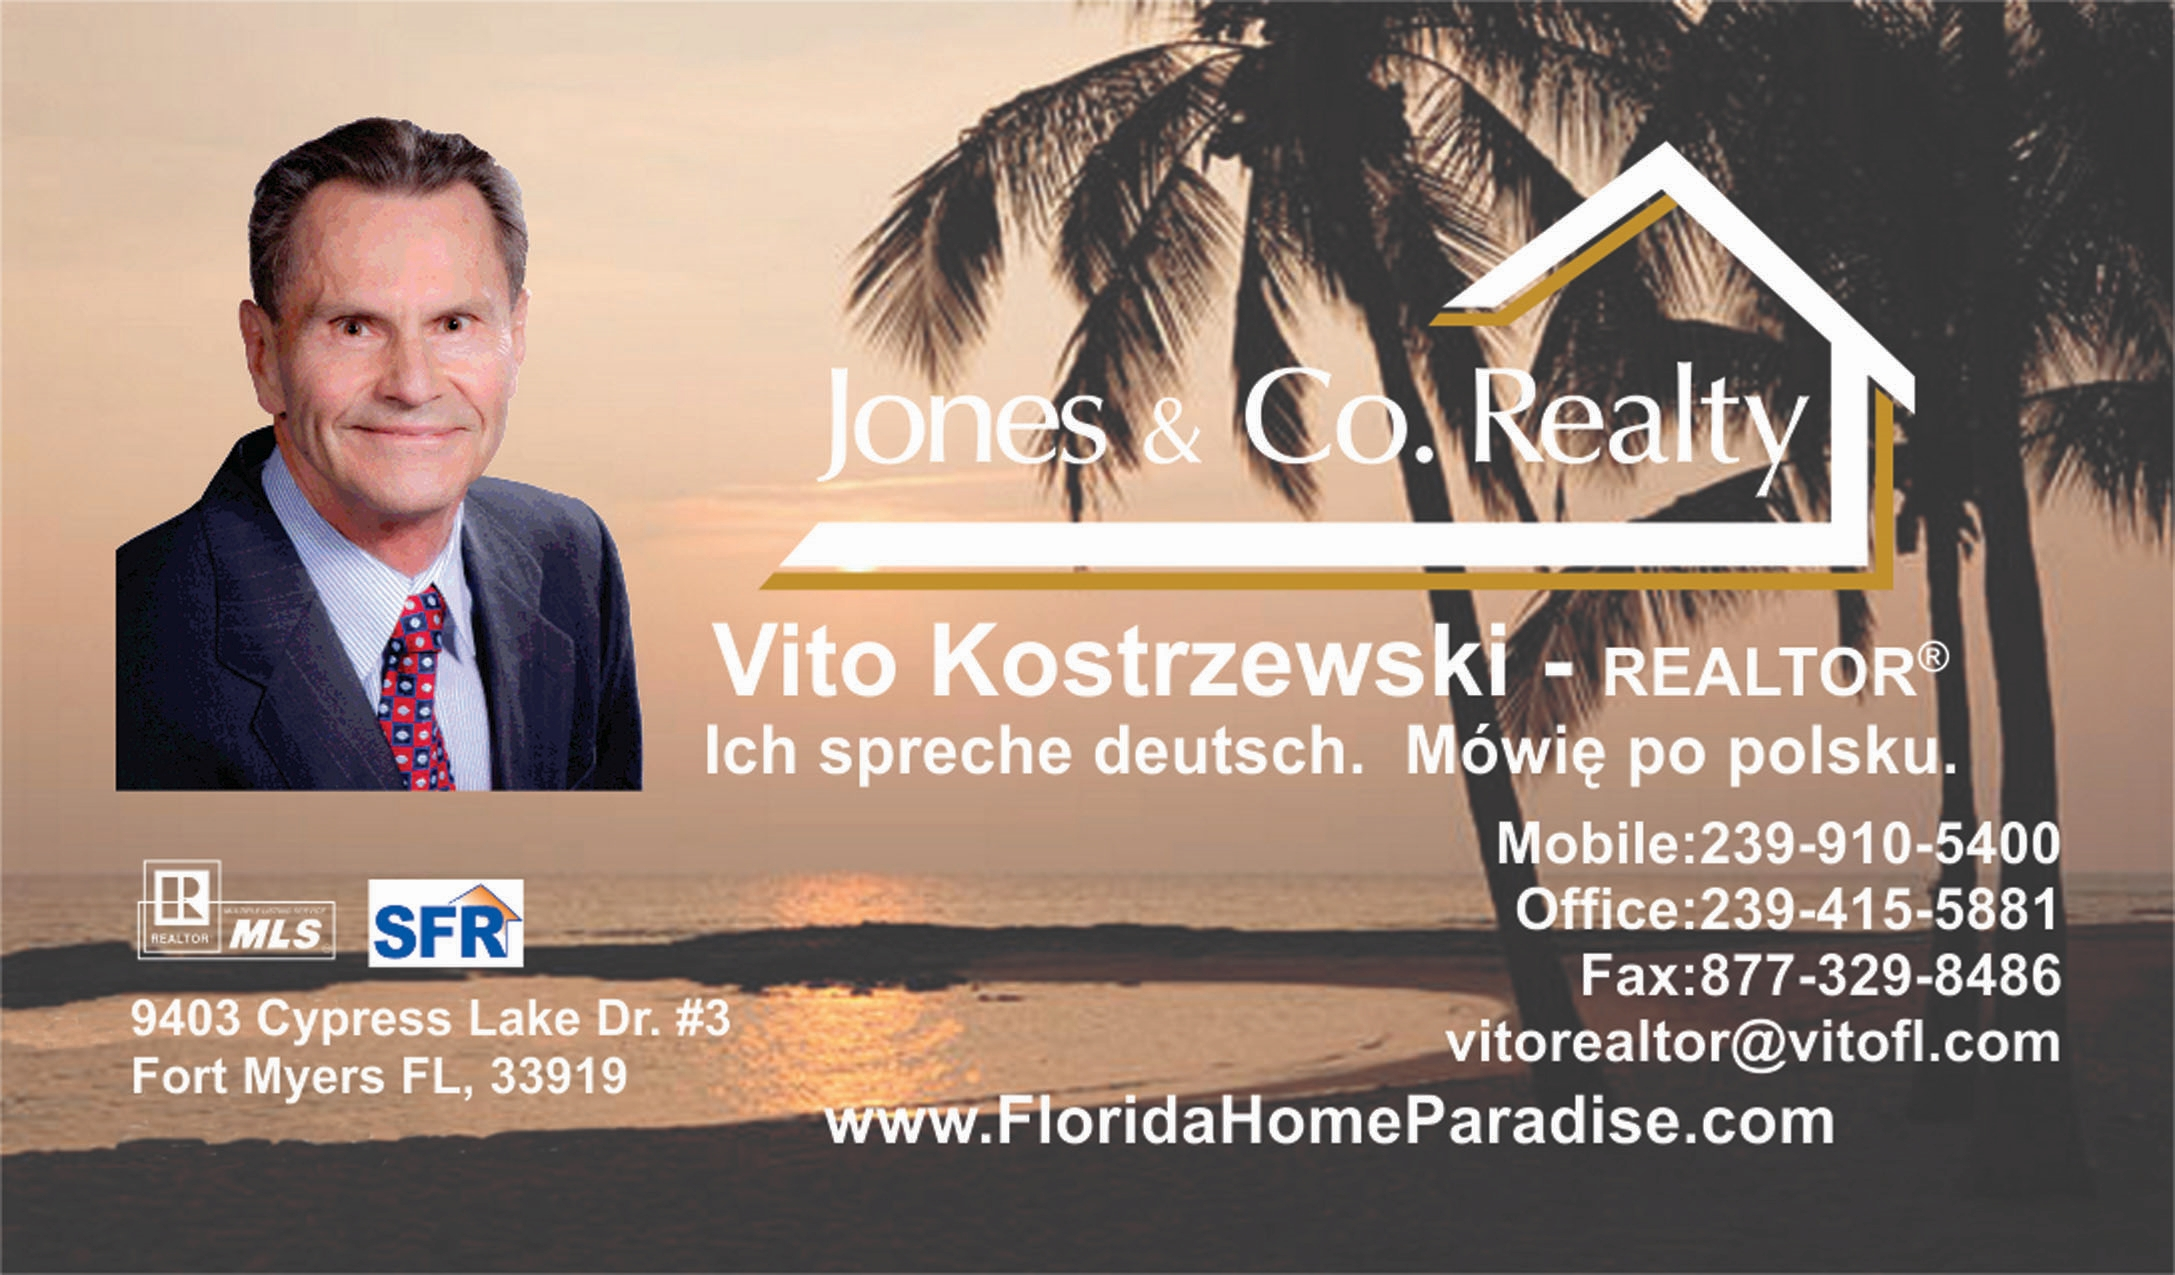 "Vito Kostrzewski - Realtor at Jones & Co. Realty 9403 Cypress Lake Dr. #3, Fort Myers, FL 33919 Cape Coral, FL For a real estate professional who can ""guarantee successful results for sellers and buyers"", then look no further than Vito Kostrzewski, SFR, the 24/7 Realtor. With extensive experience in real estate, Vito has excellent knowledge of all aspects of the real estate industry. He specializes in single-family homes, condominiums, vacant lots, investment property, bank owned properties and short sales. Vito uses his vast and advanced computer skills to aide him in his in-depth research for each of his client transactions. In addition to having an advanced degree in Plastics Engineering, living, studying and working in five countries and 20 years of experience working in R&D and technical management for several large, medium and smaller companies, mostly in the US, Vito is also fluent in both German and Polish, which contribute to his ability to provide superior, knowledgeable customer service. Vito Kostrzewski jest polskim ""24/7"" pośrednikiem nieruchomości, który gwarantuje sukces w kupnie i sprzedaży nieruchomości. Vito ma obszerną wiedzę oraz doświadczenie na rynku nieruchomości. Vito specjalisuje się w stomach jednorodzinnych, mieszkaniach, działkach budowlanych, nieruchomościach inwestycyjnych oraz nieruchomościach przejętych przez banki. Vito jest z wykształcenia inżynierem i w przeszłości pracował oraz studiował w pięciu krajach, ma 20- letnie doświadczenie profesjonalne i mówi biegle po niemiecku i po polsku. Cell: (239) 910-5400 Office: (239) 415-5881 Email: vitorealtor@vitofl.com www.FloridaHomeParadise.com For more information about Vito click here: https://expertnetwork.co/members/vito-kostrzewski"